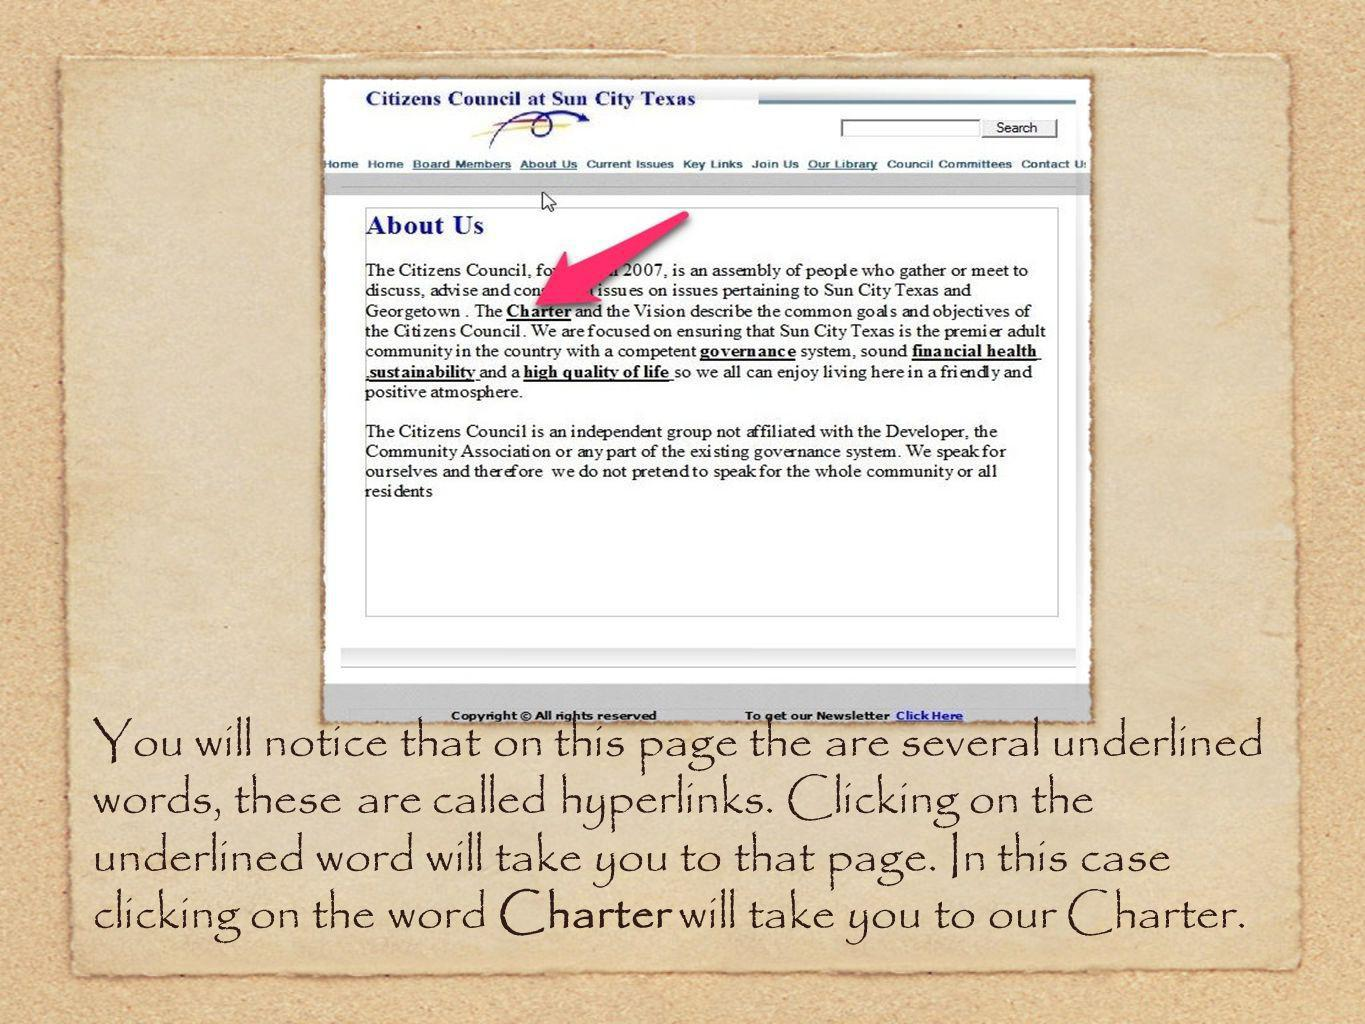 You will notice that on this page the are several underlined words, these are called hyperlinks.